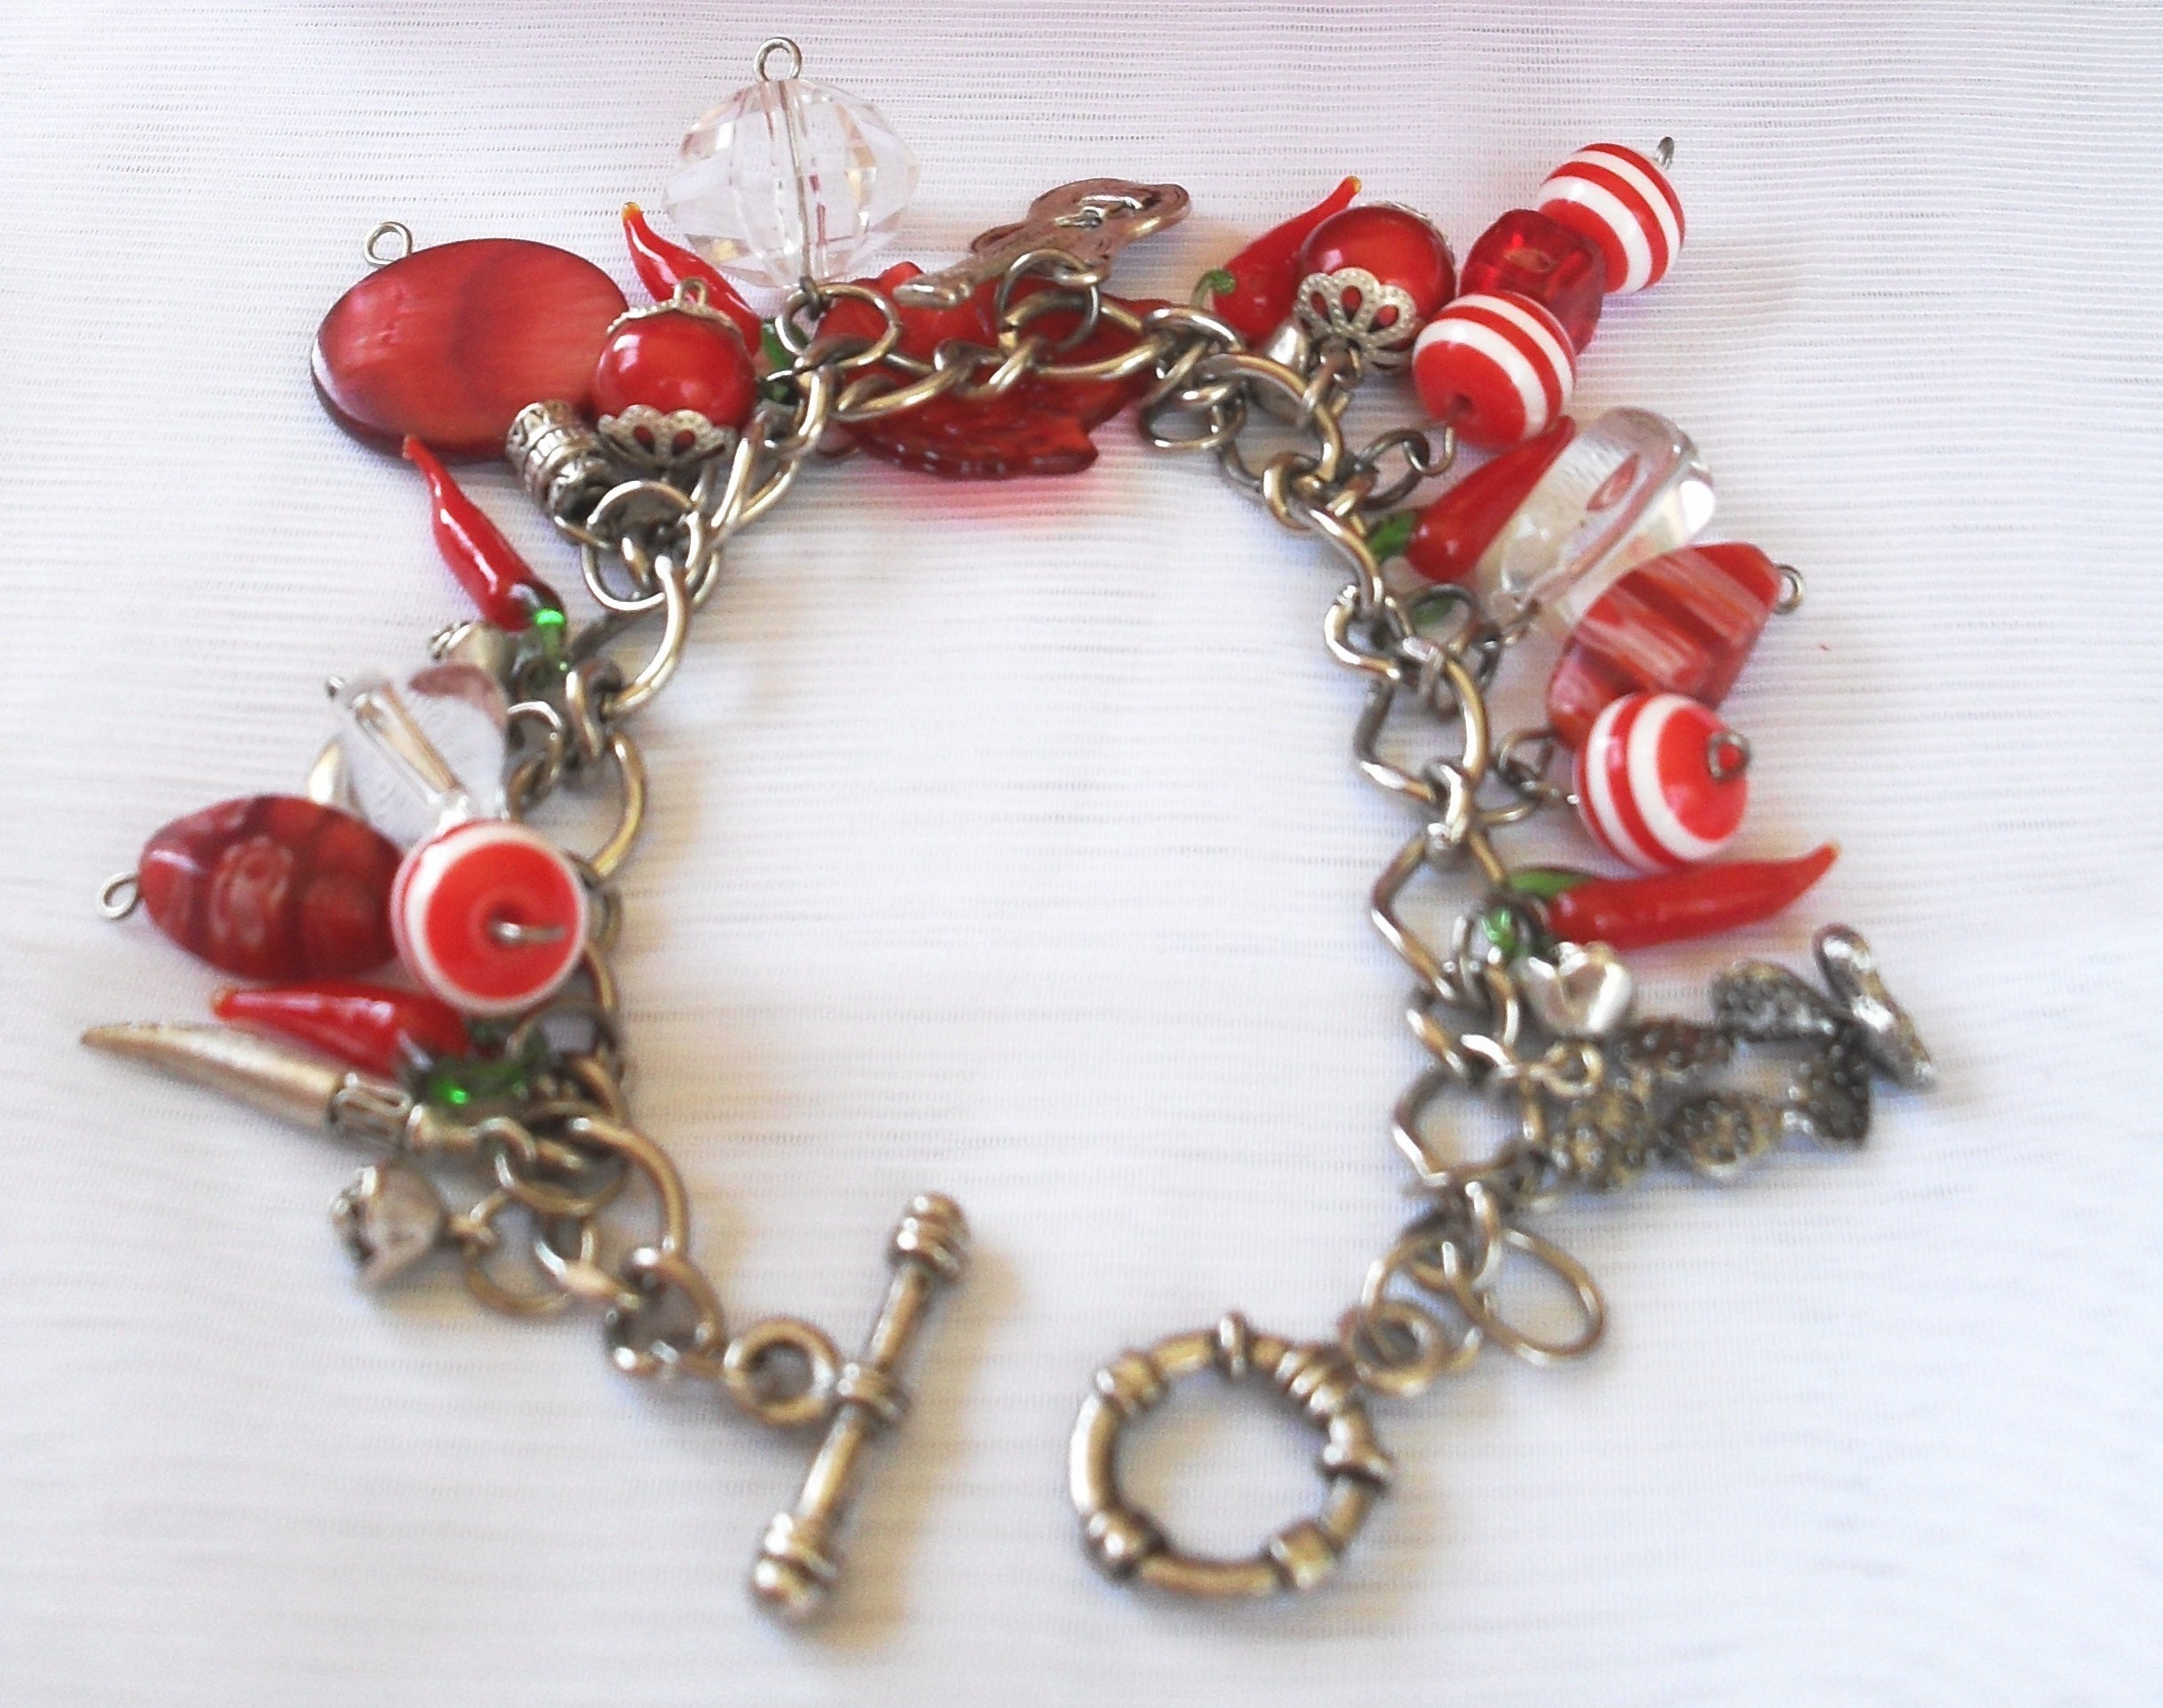 Do it yourself DIY Charm Bracelet